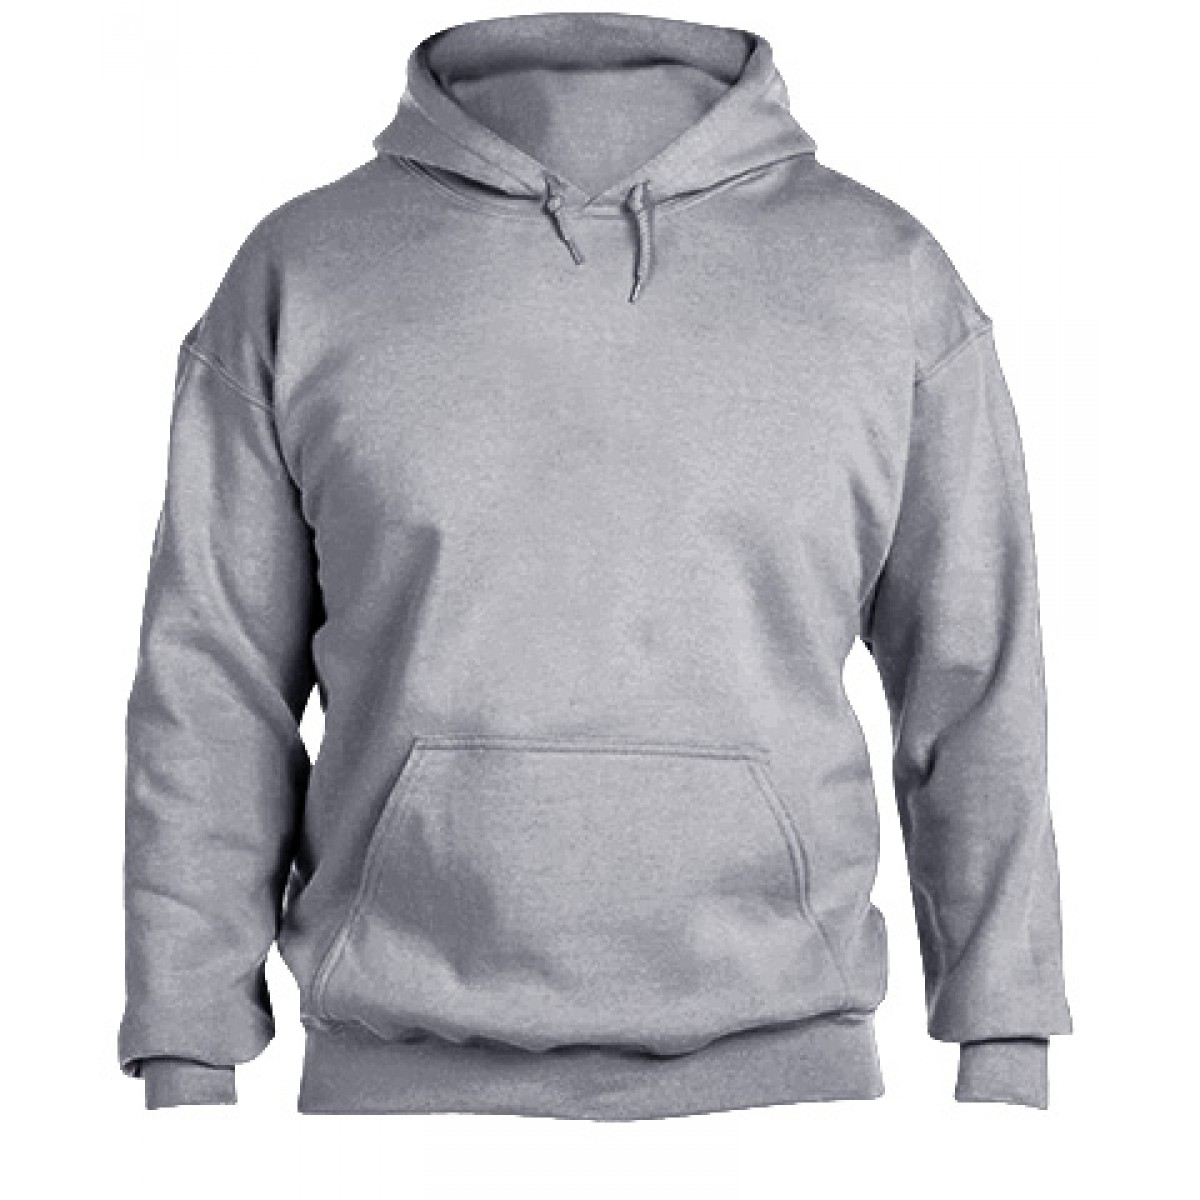 Hooded Sweatshirt 50/50 Heavy Blend-Sports Grey-XS